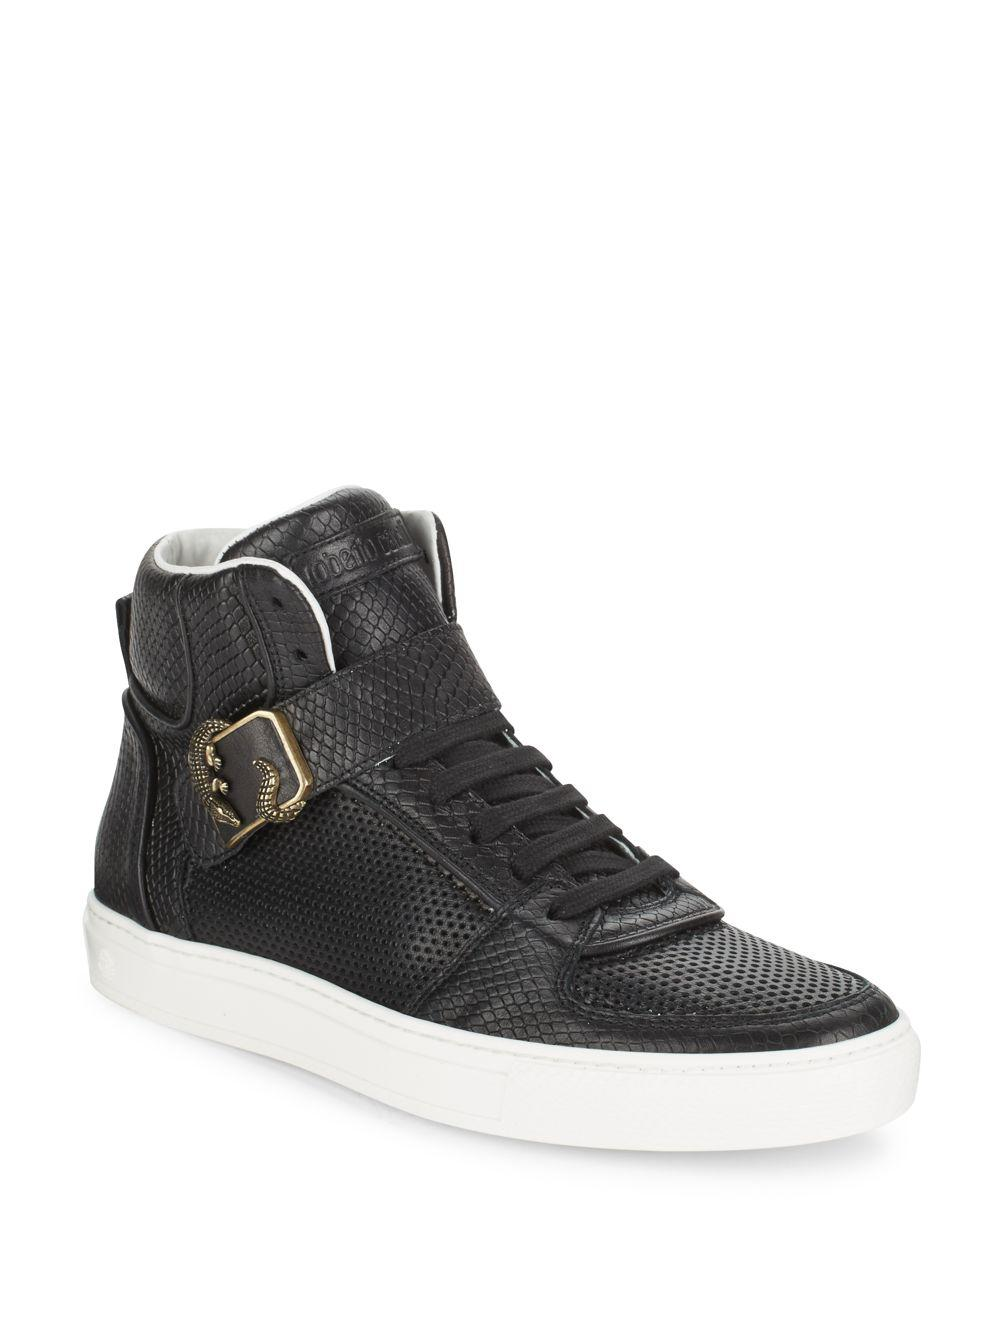 cheap sale looking for Roberto Cavalli snake embossed runner sneakers low shipping fee online new arrival for sale 38tDNP